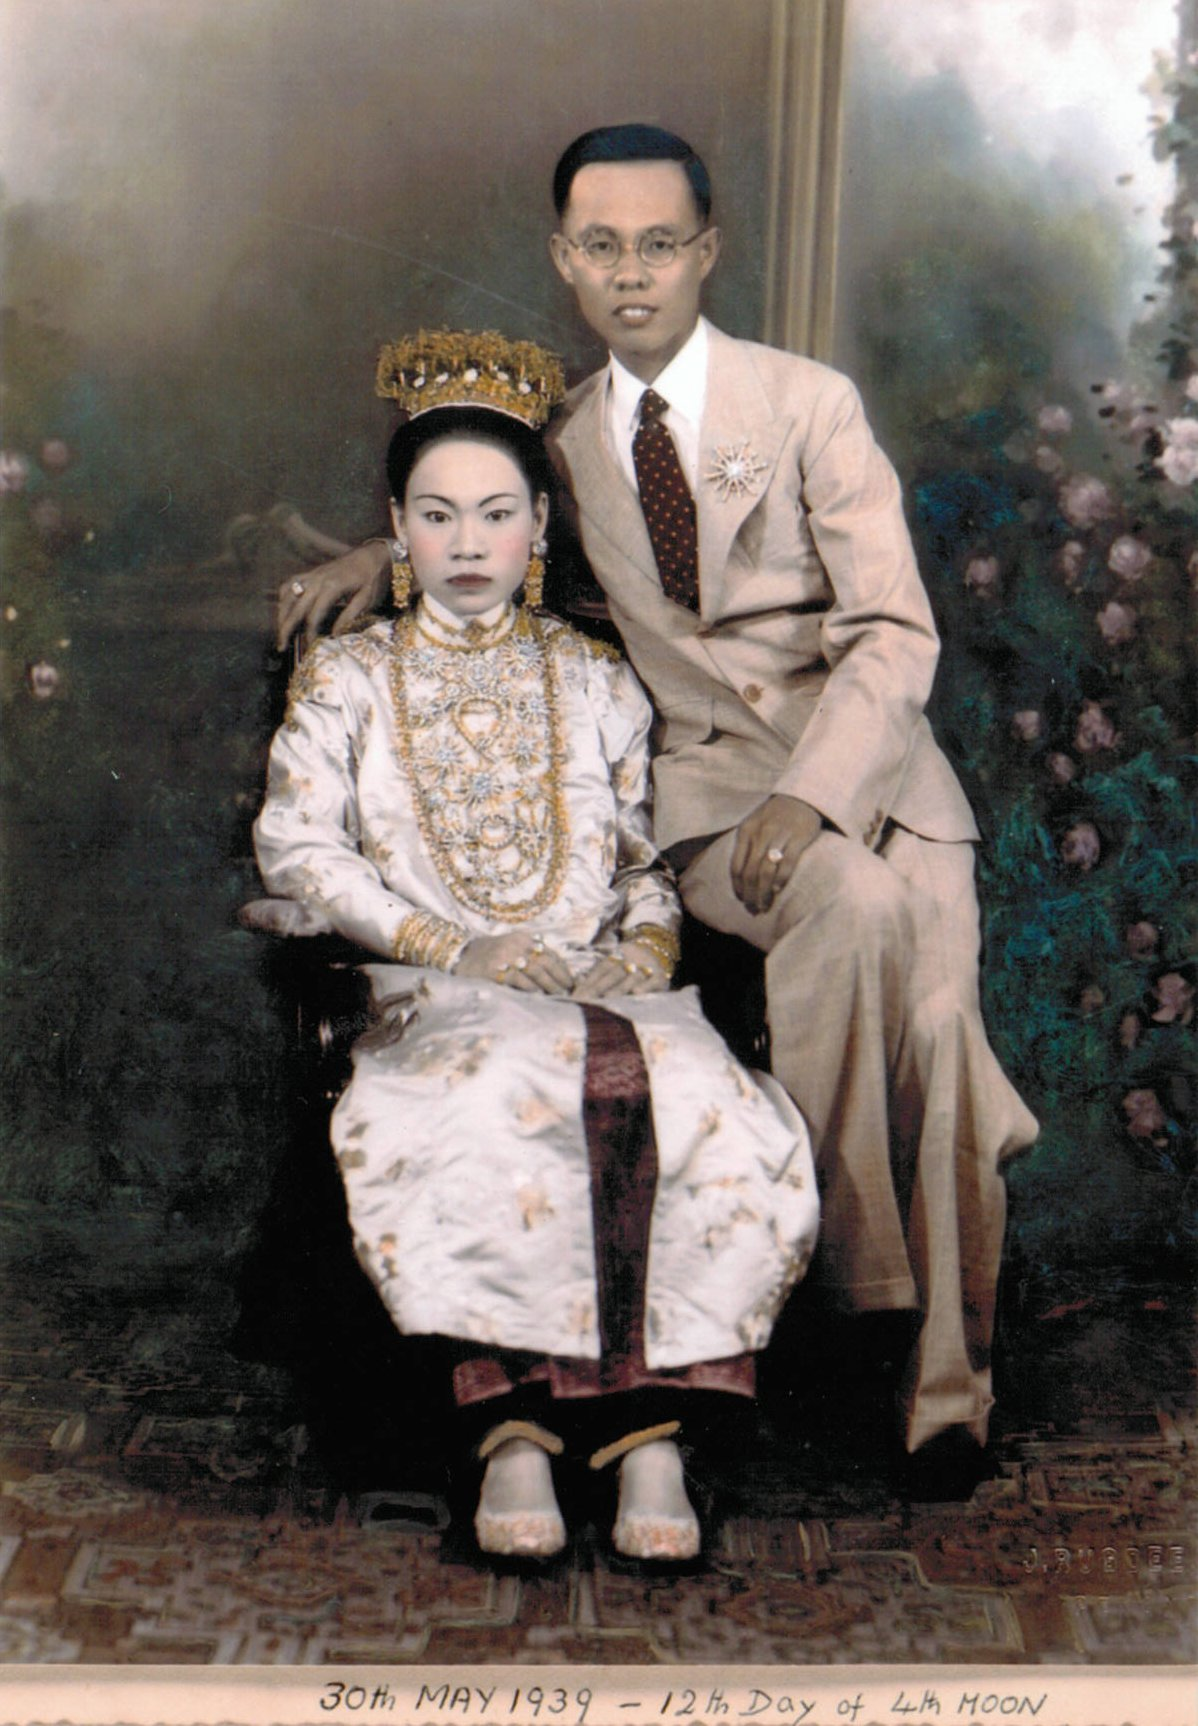 Fileanonymous Photograph Of A Peranakan Bride And Groom Dated  The Intan Singapore Jpg